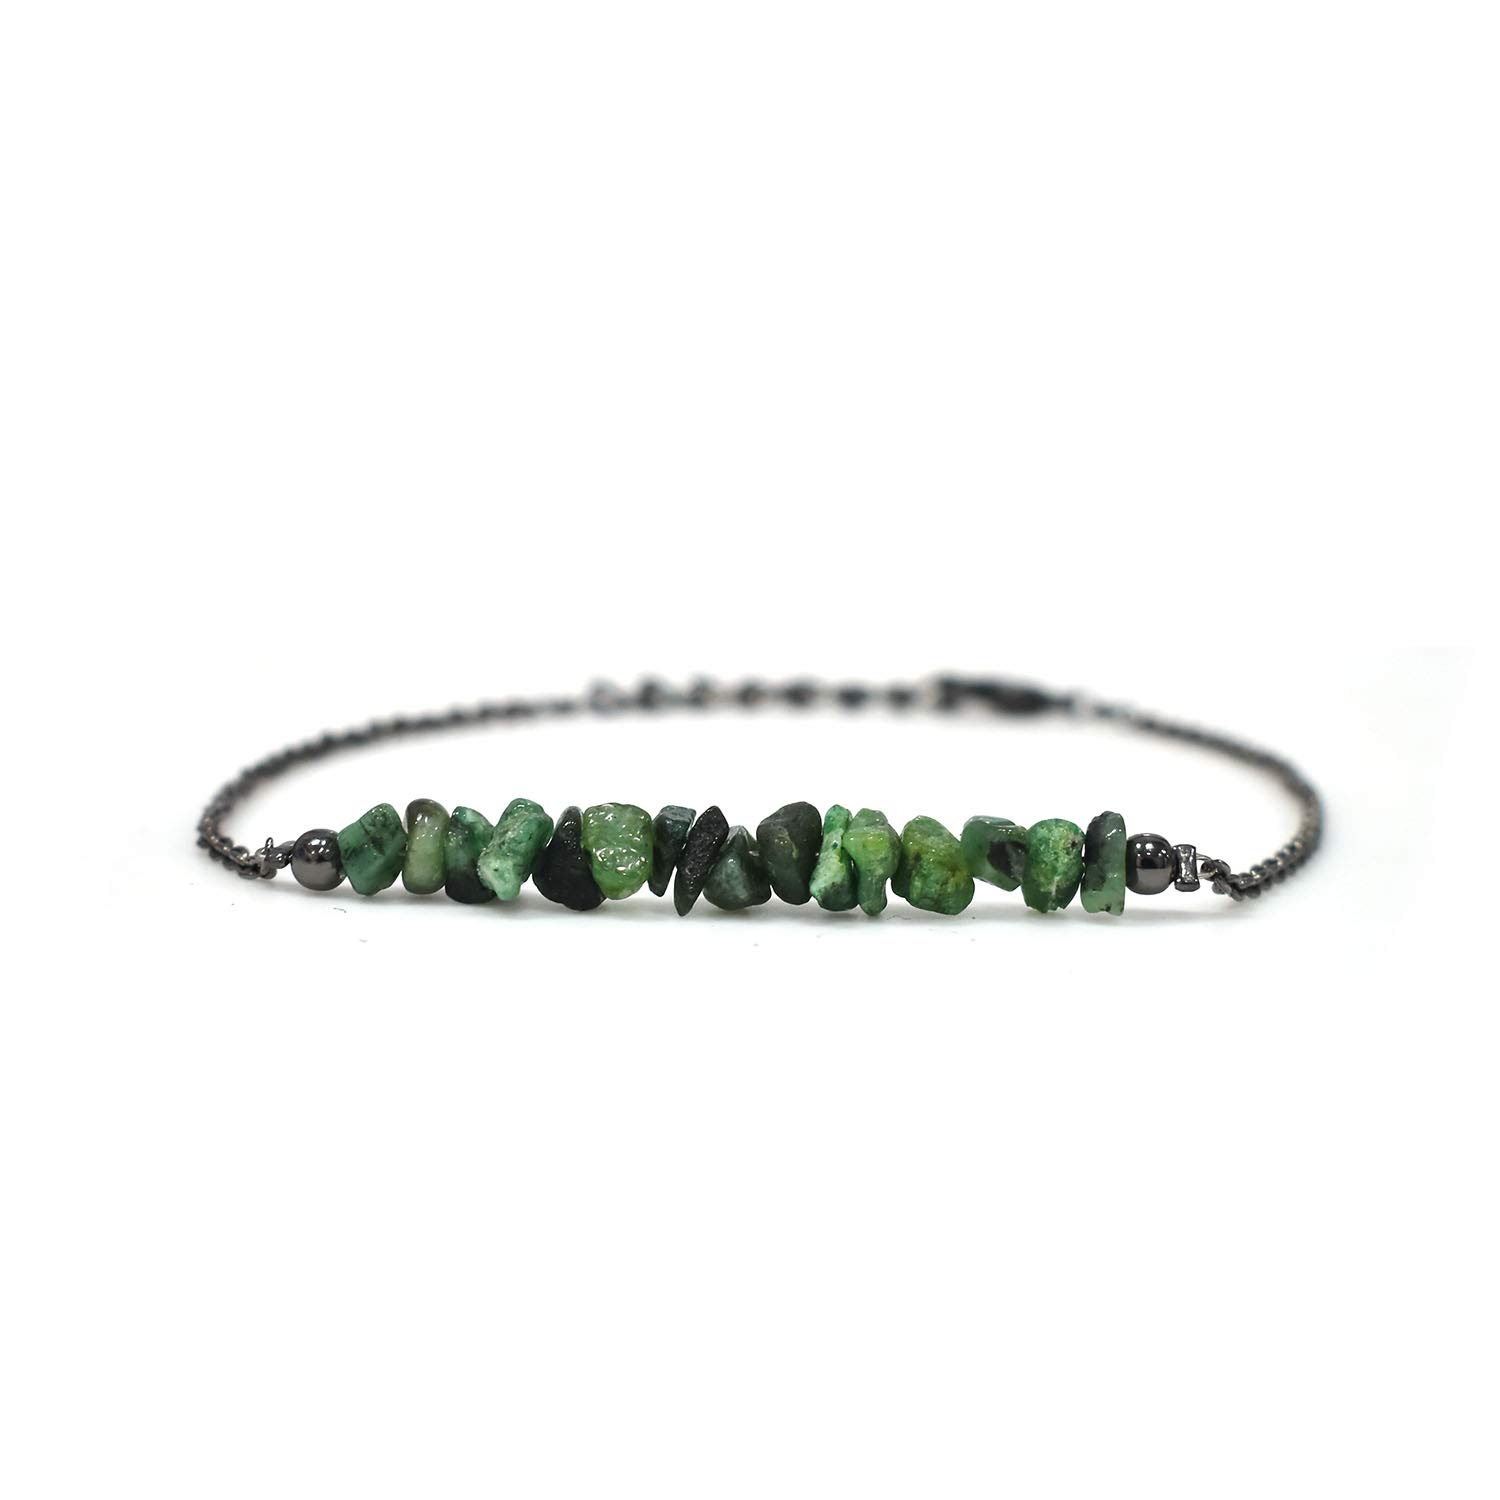 Natural Emerald Chips Bracelet Birthday Gift for Her Energy Healing Crystals Gemstone Jewelry 8 inch AAA+ Quality